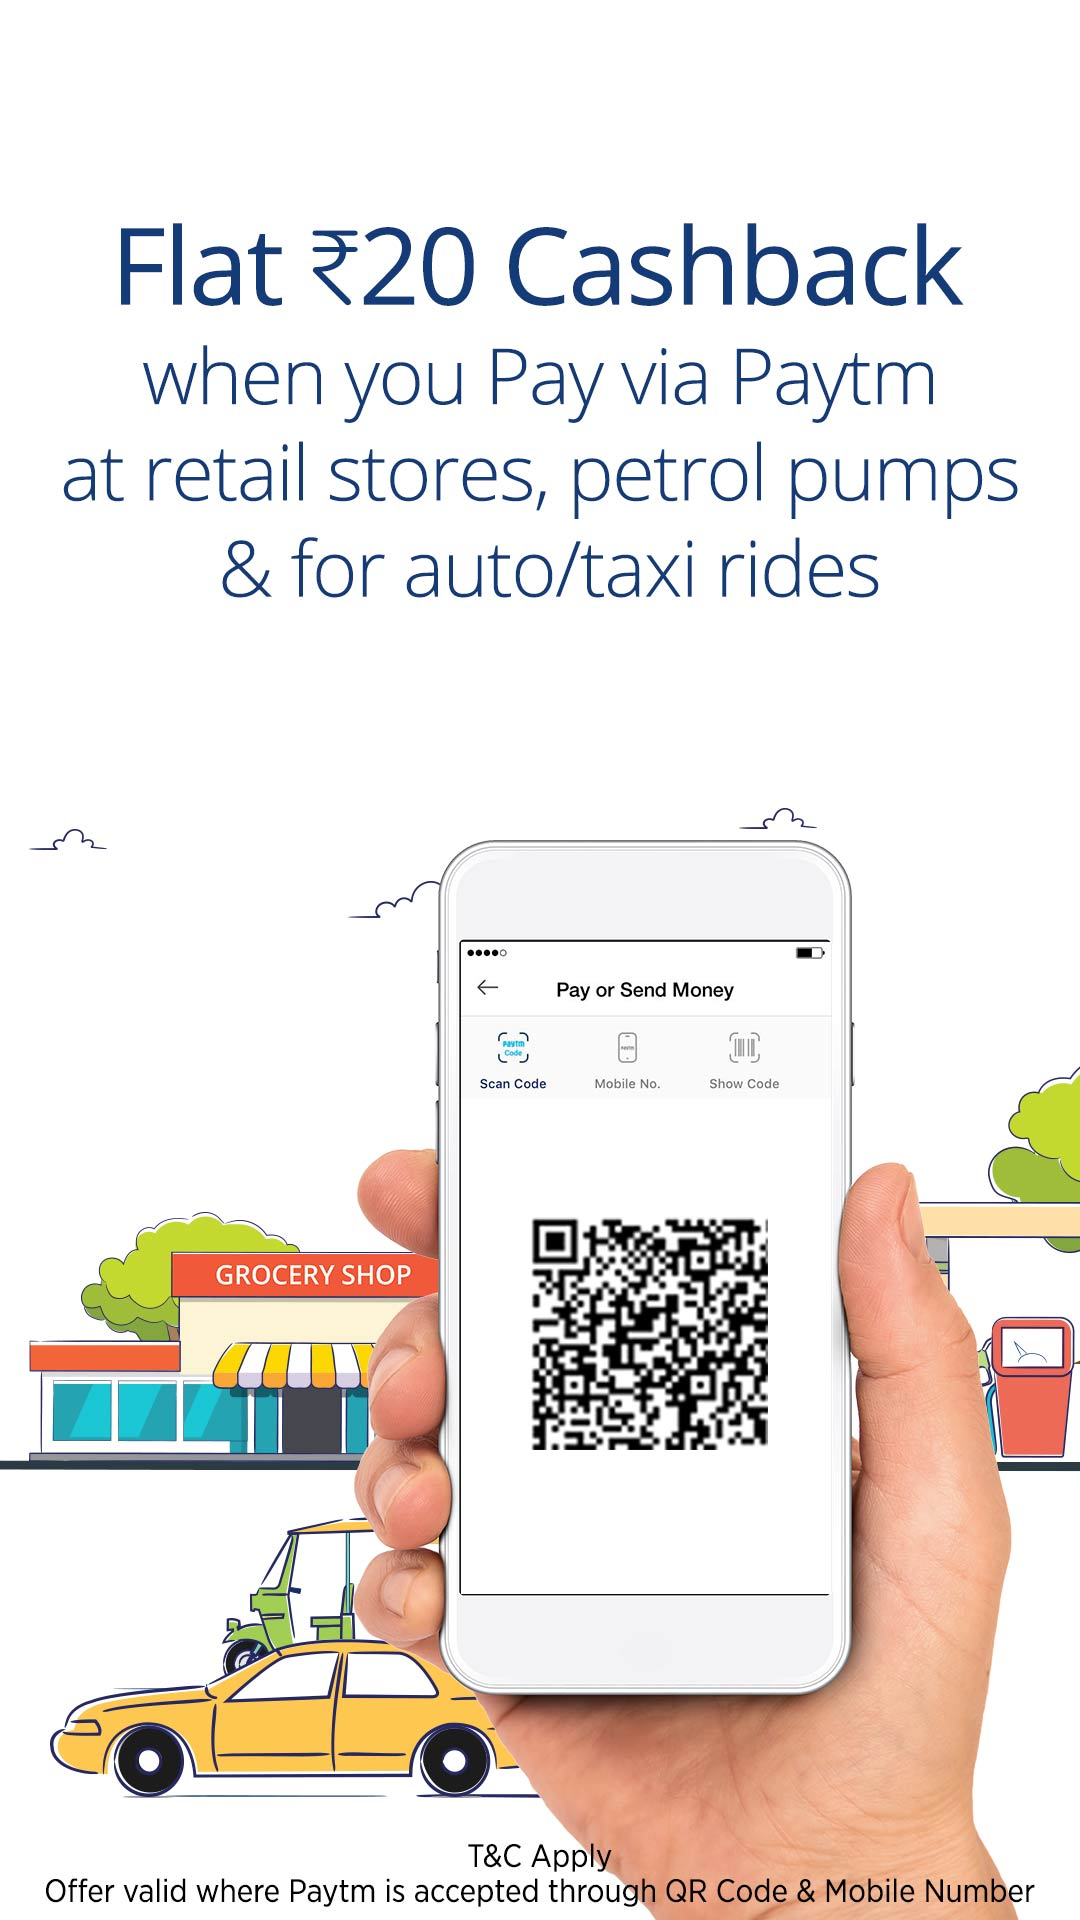 Flat Rs. 20 cashback on Retail Stores, Auto, Taxi, Petrol Pumps via Paytm